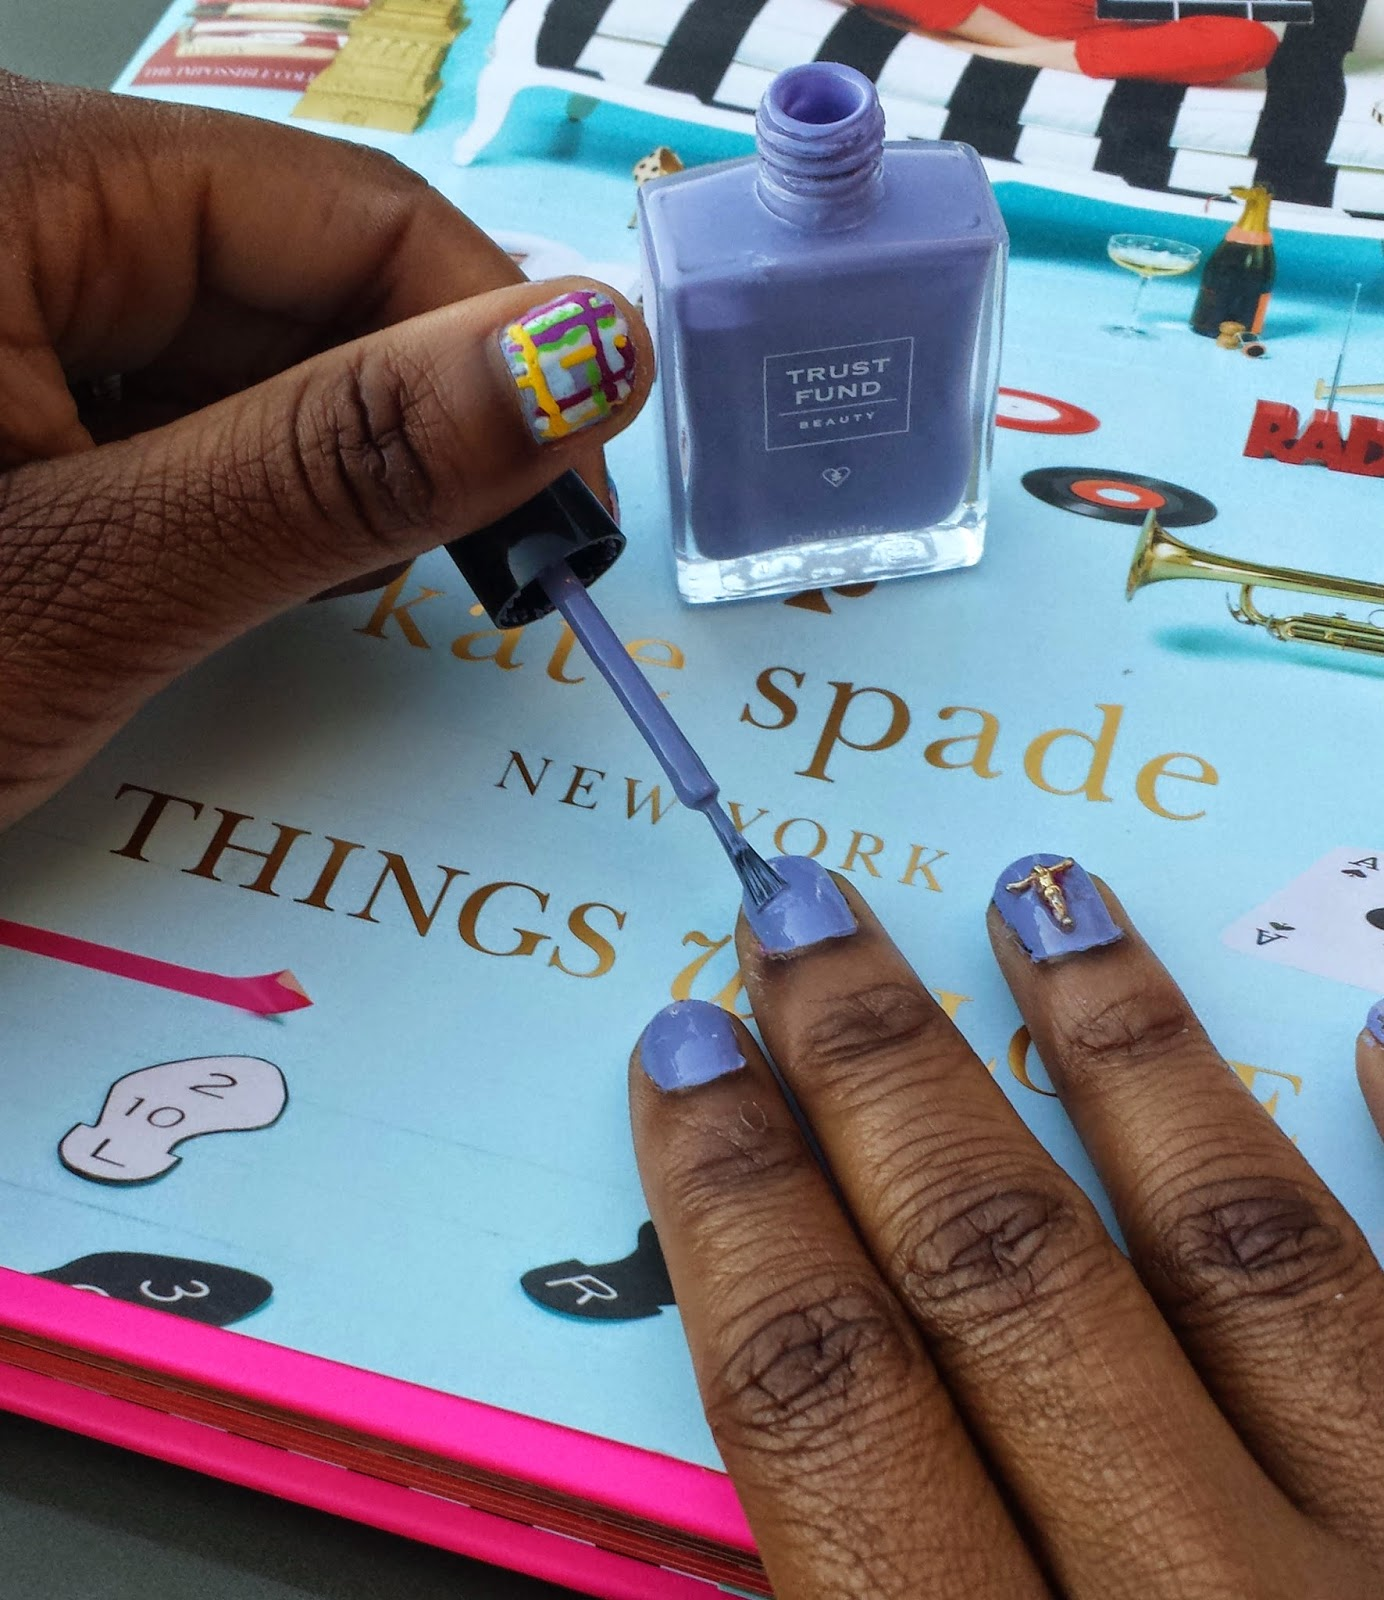 nail art, trust fund beauty, kate spade new york, things we love, ksny, nailart, elegantly wasted